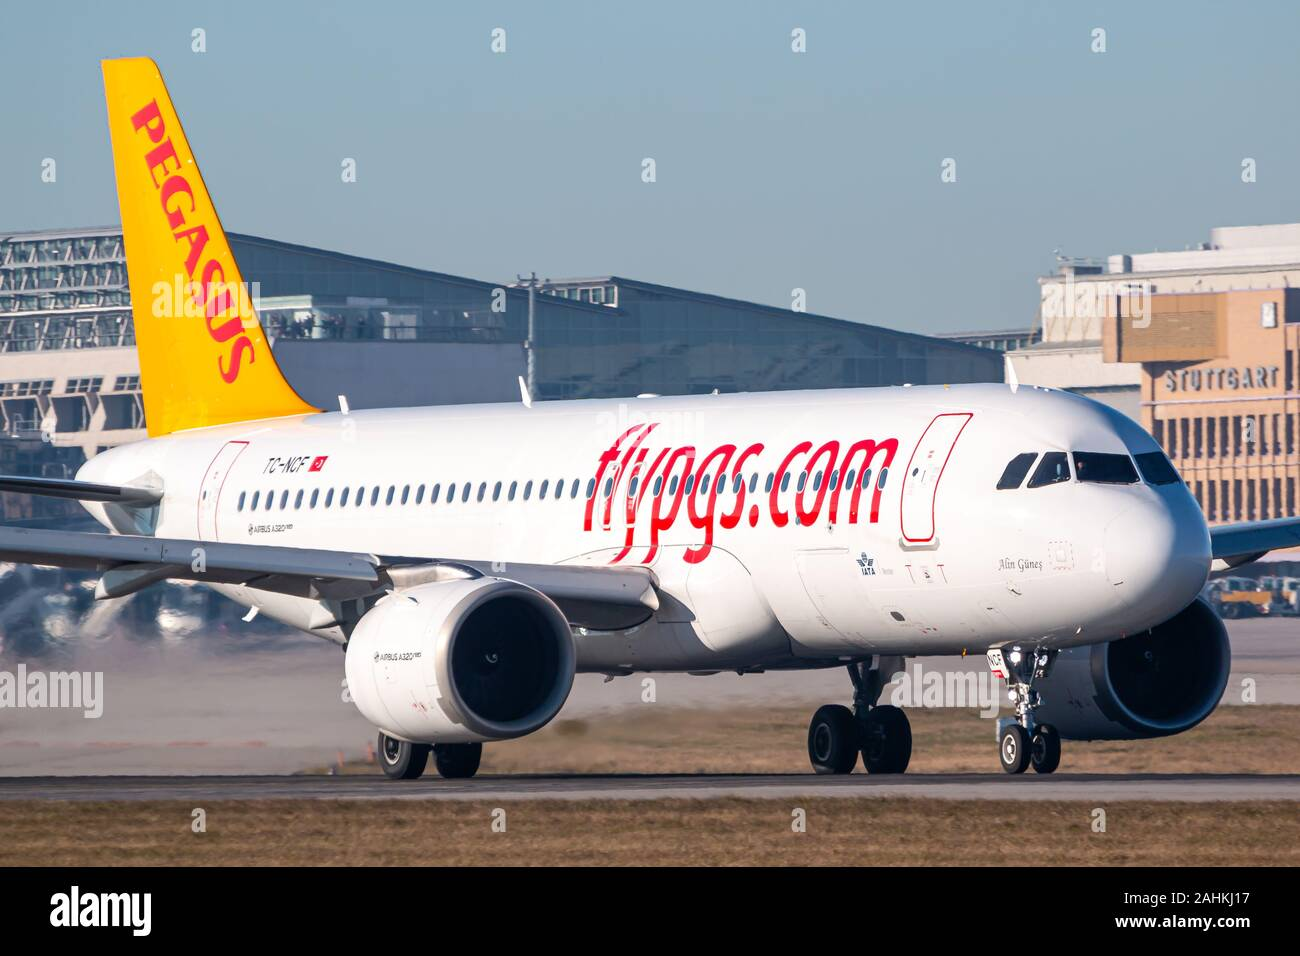 Stuttgart, Germany - December 30, 2019: Fly Pegasus Airlines Airbus A320Neo airplane at Stuttgart airport (STR) in Germany. Airbus is an aircraft manu Stock Photo